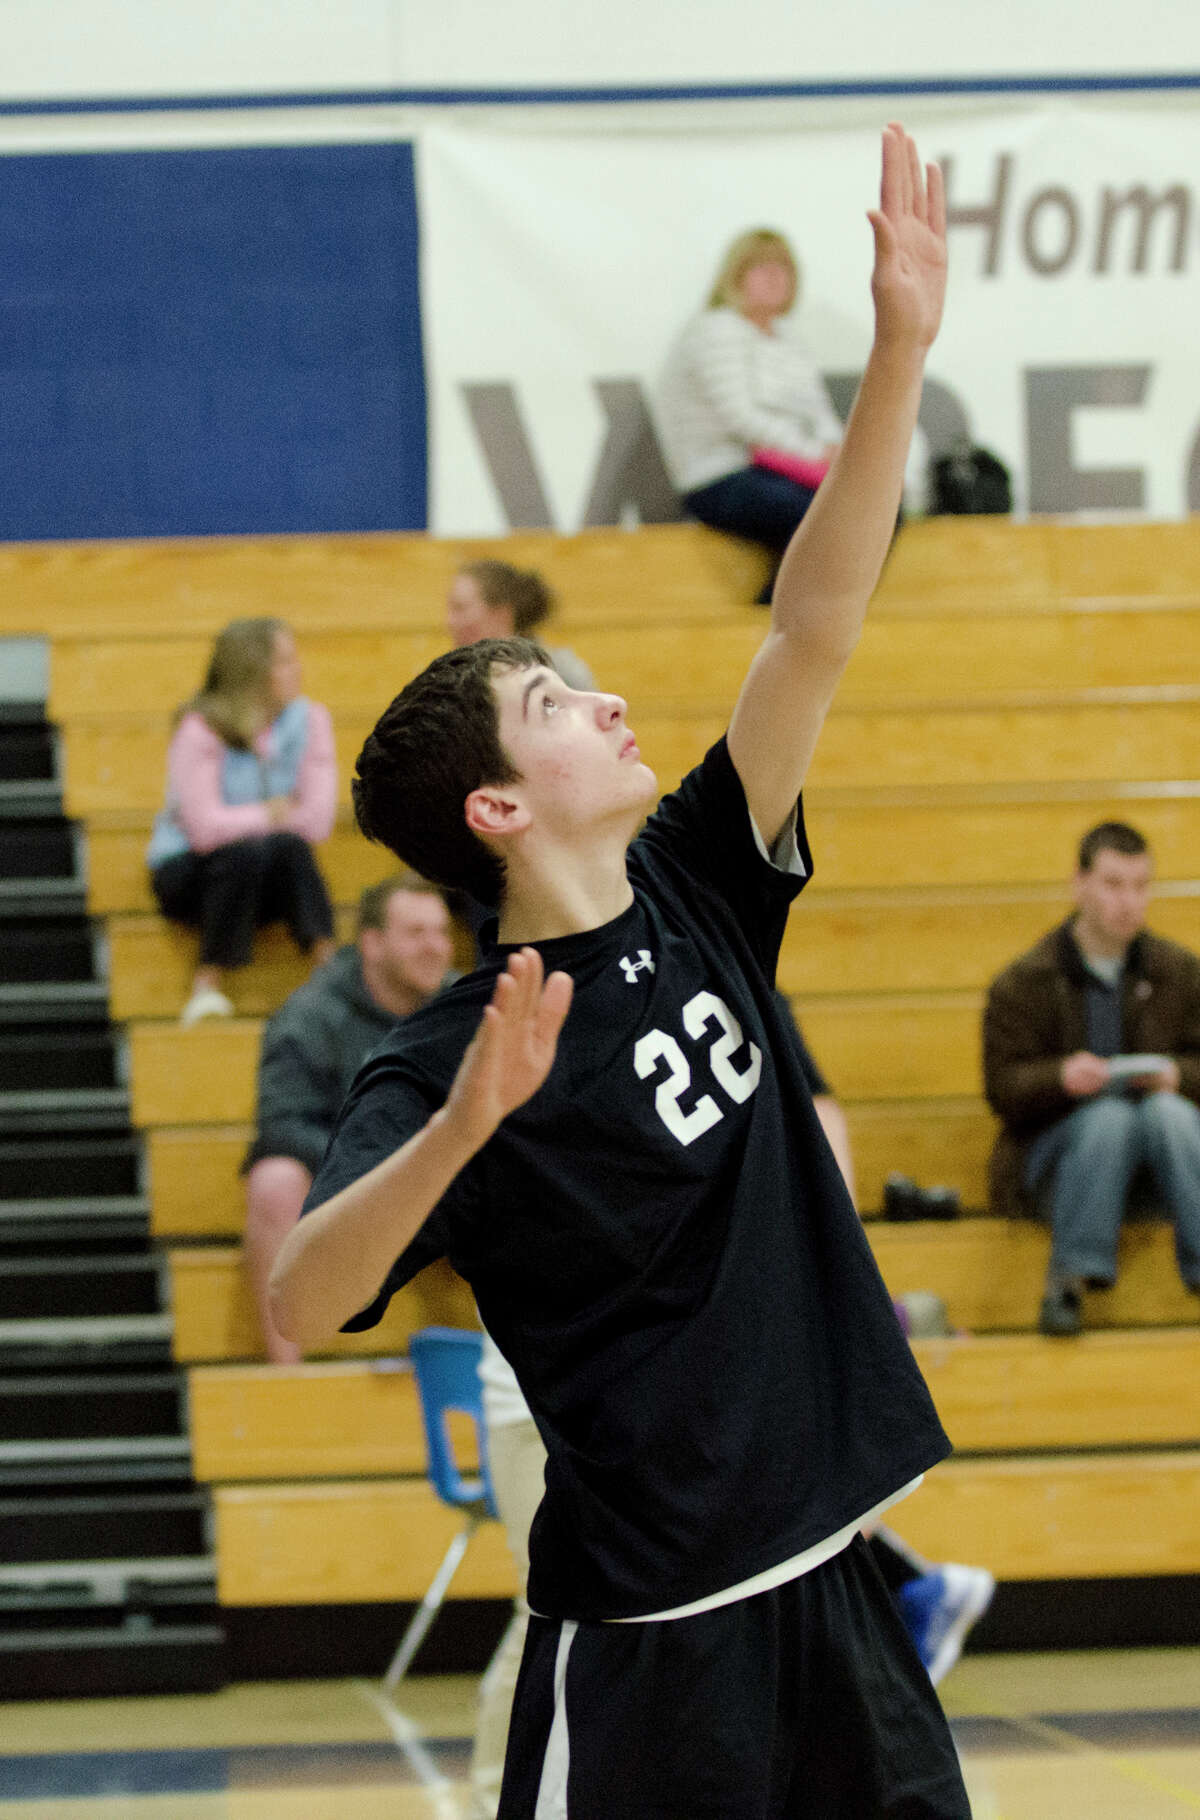 Fairfield Ludlowe/Warde co-op's Tim Beradino (22) serves the ball during the boys volleyball game against Staples at Staples High School in Westport on Monday, Apr. 15, 2013.